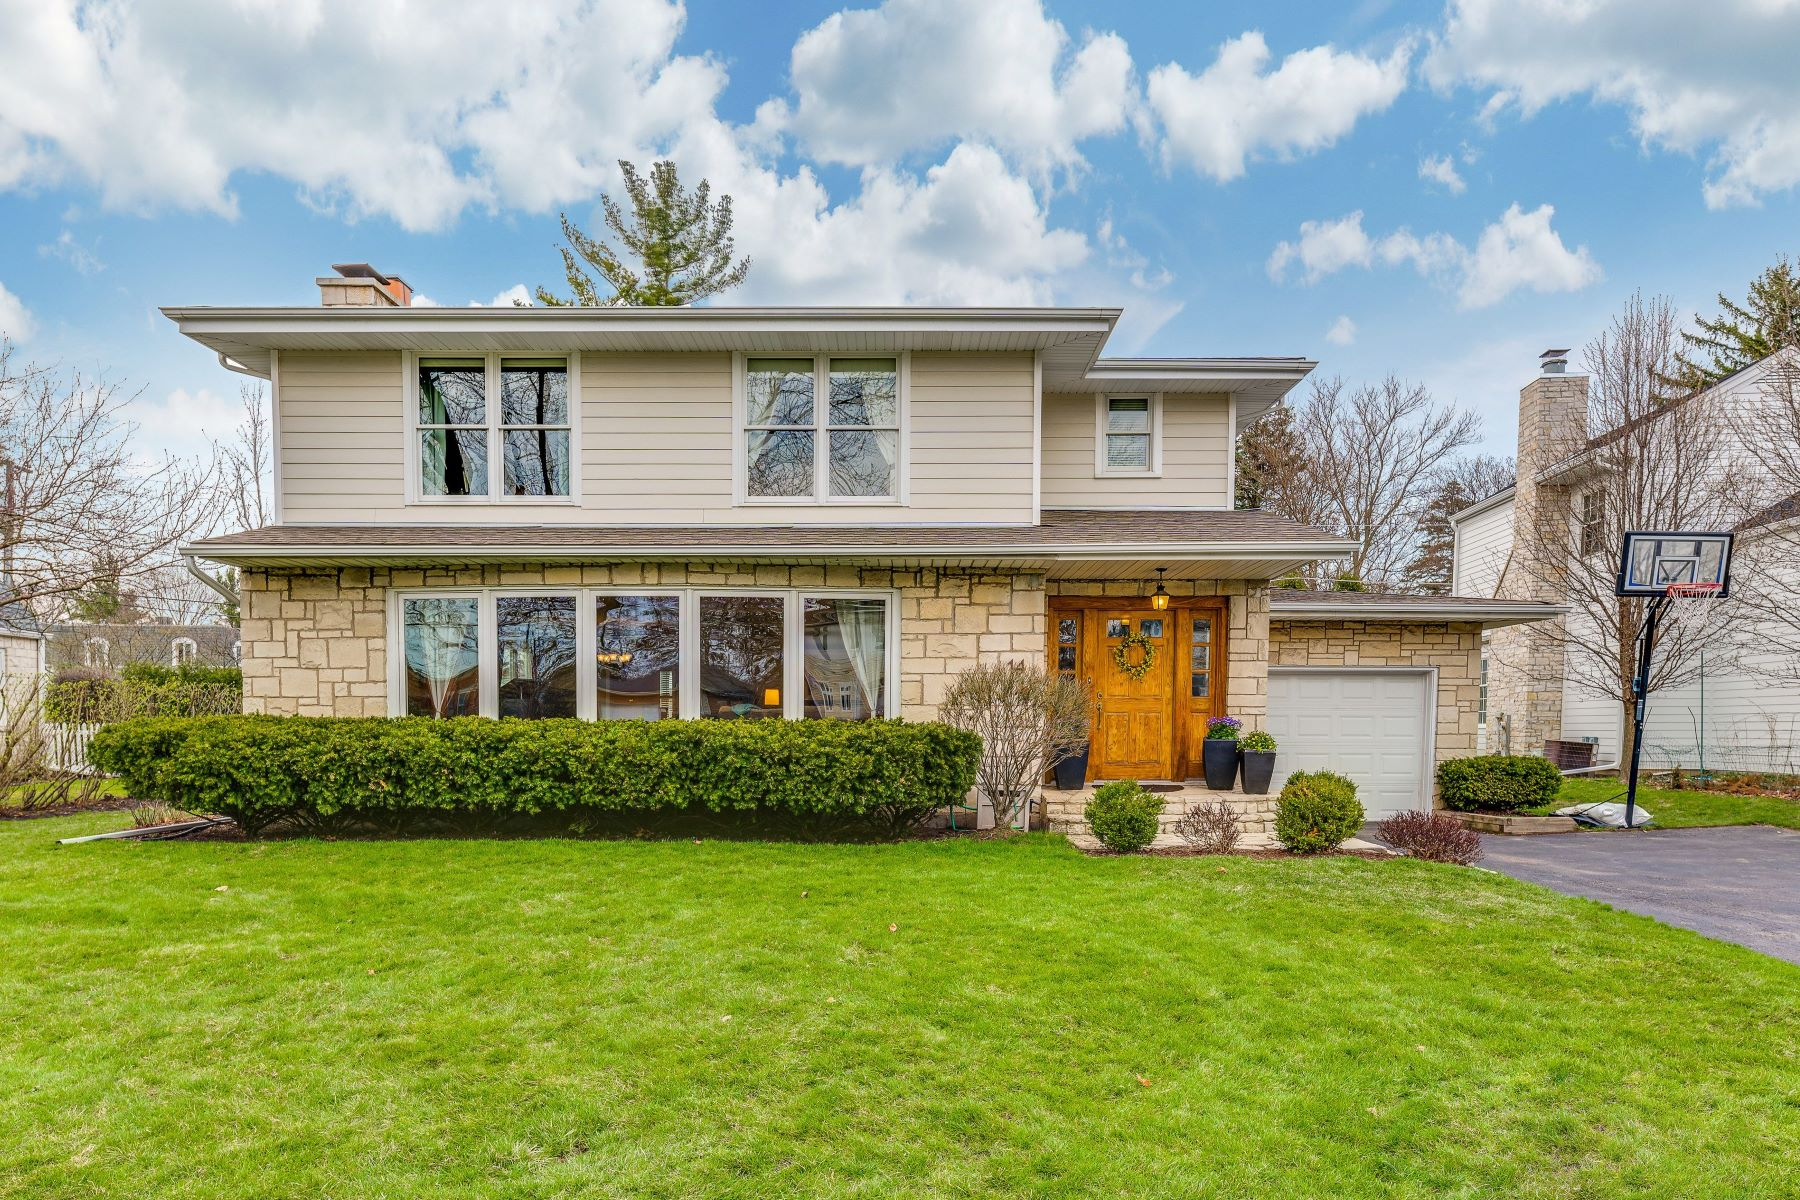 Single Family Home for Active at The One You've Been Waiting For! 14 Briar Road Golf, Illinois 60029 United States